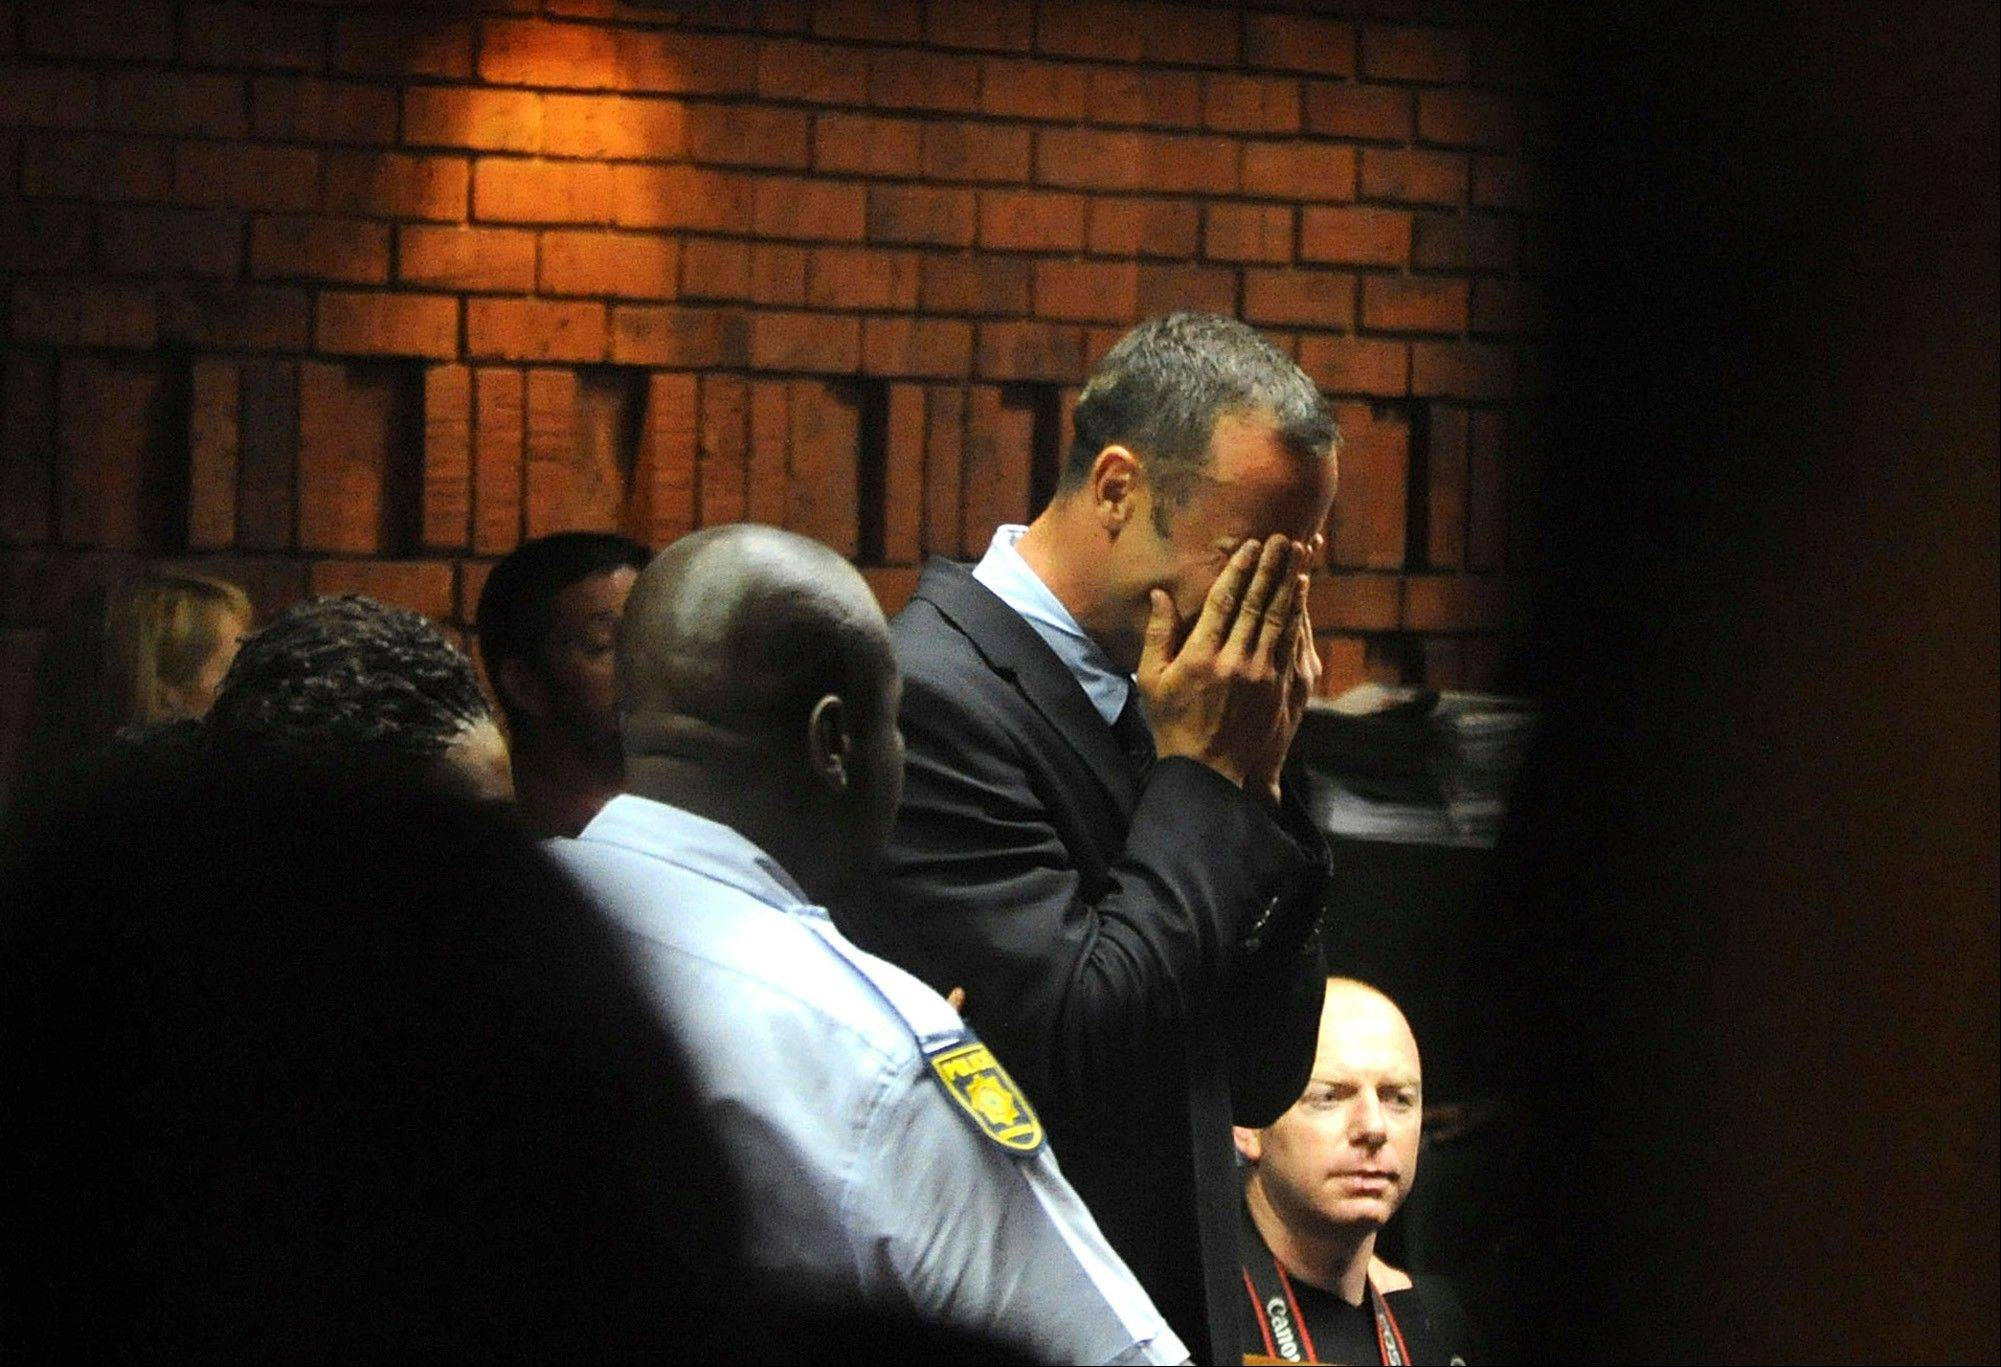 Pistorius cancels future races in wake of murder charge